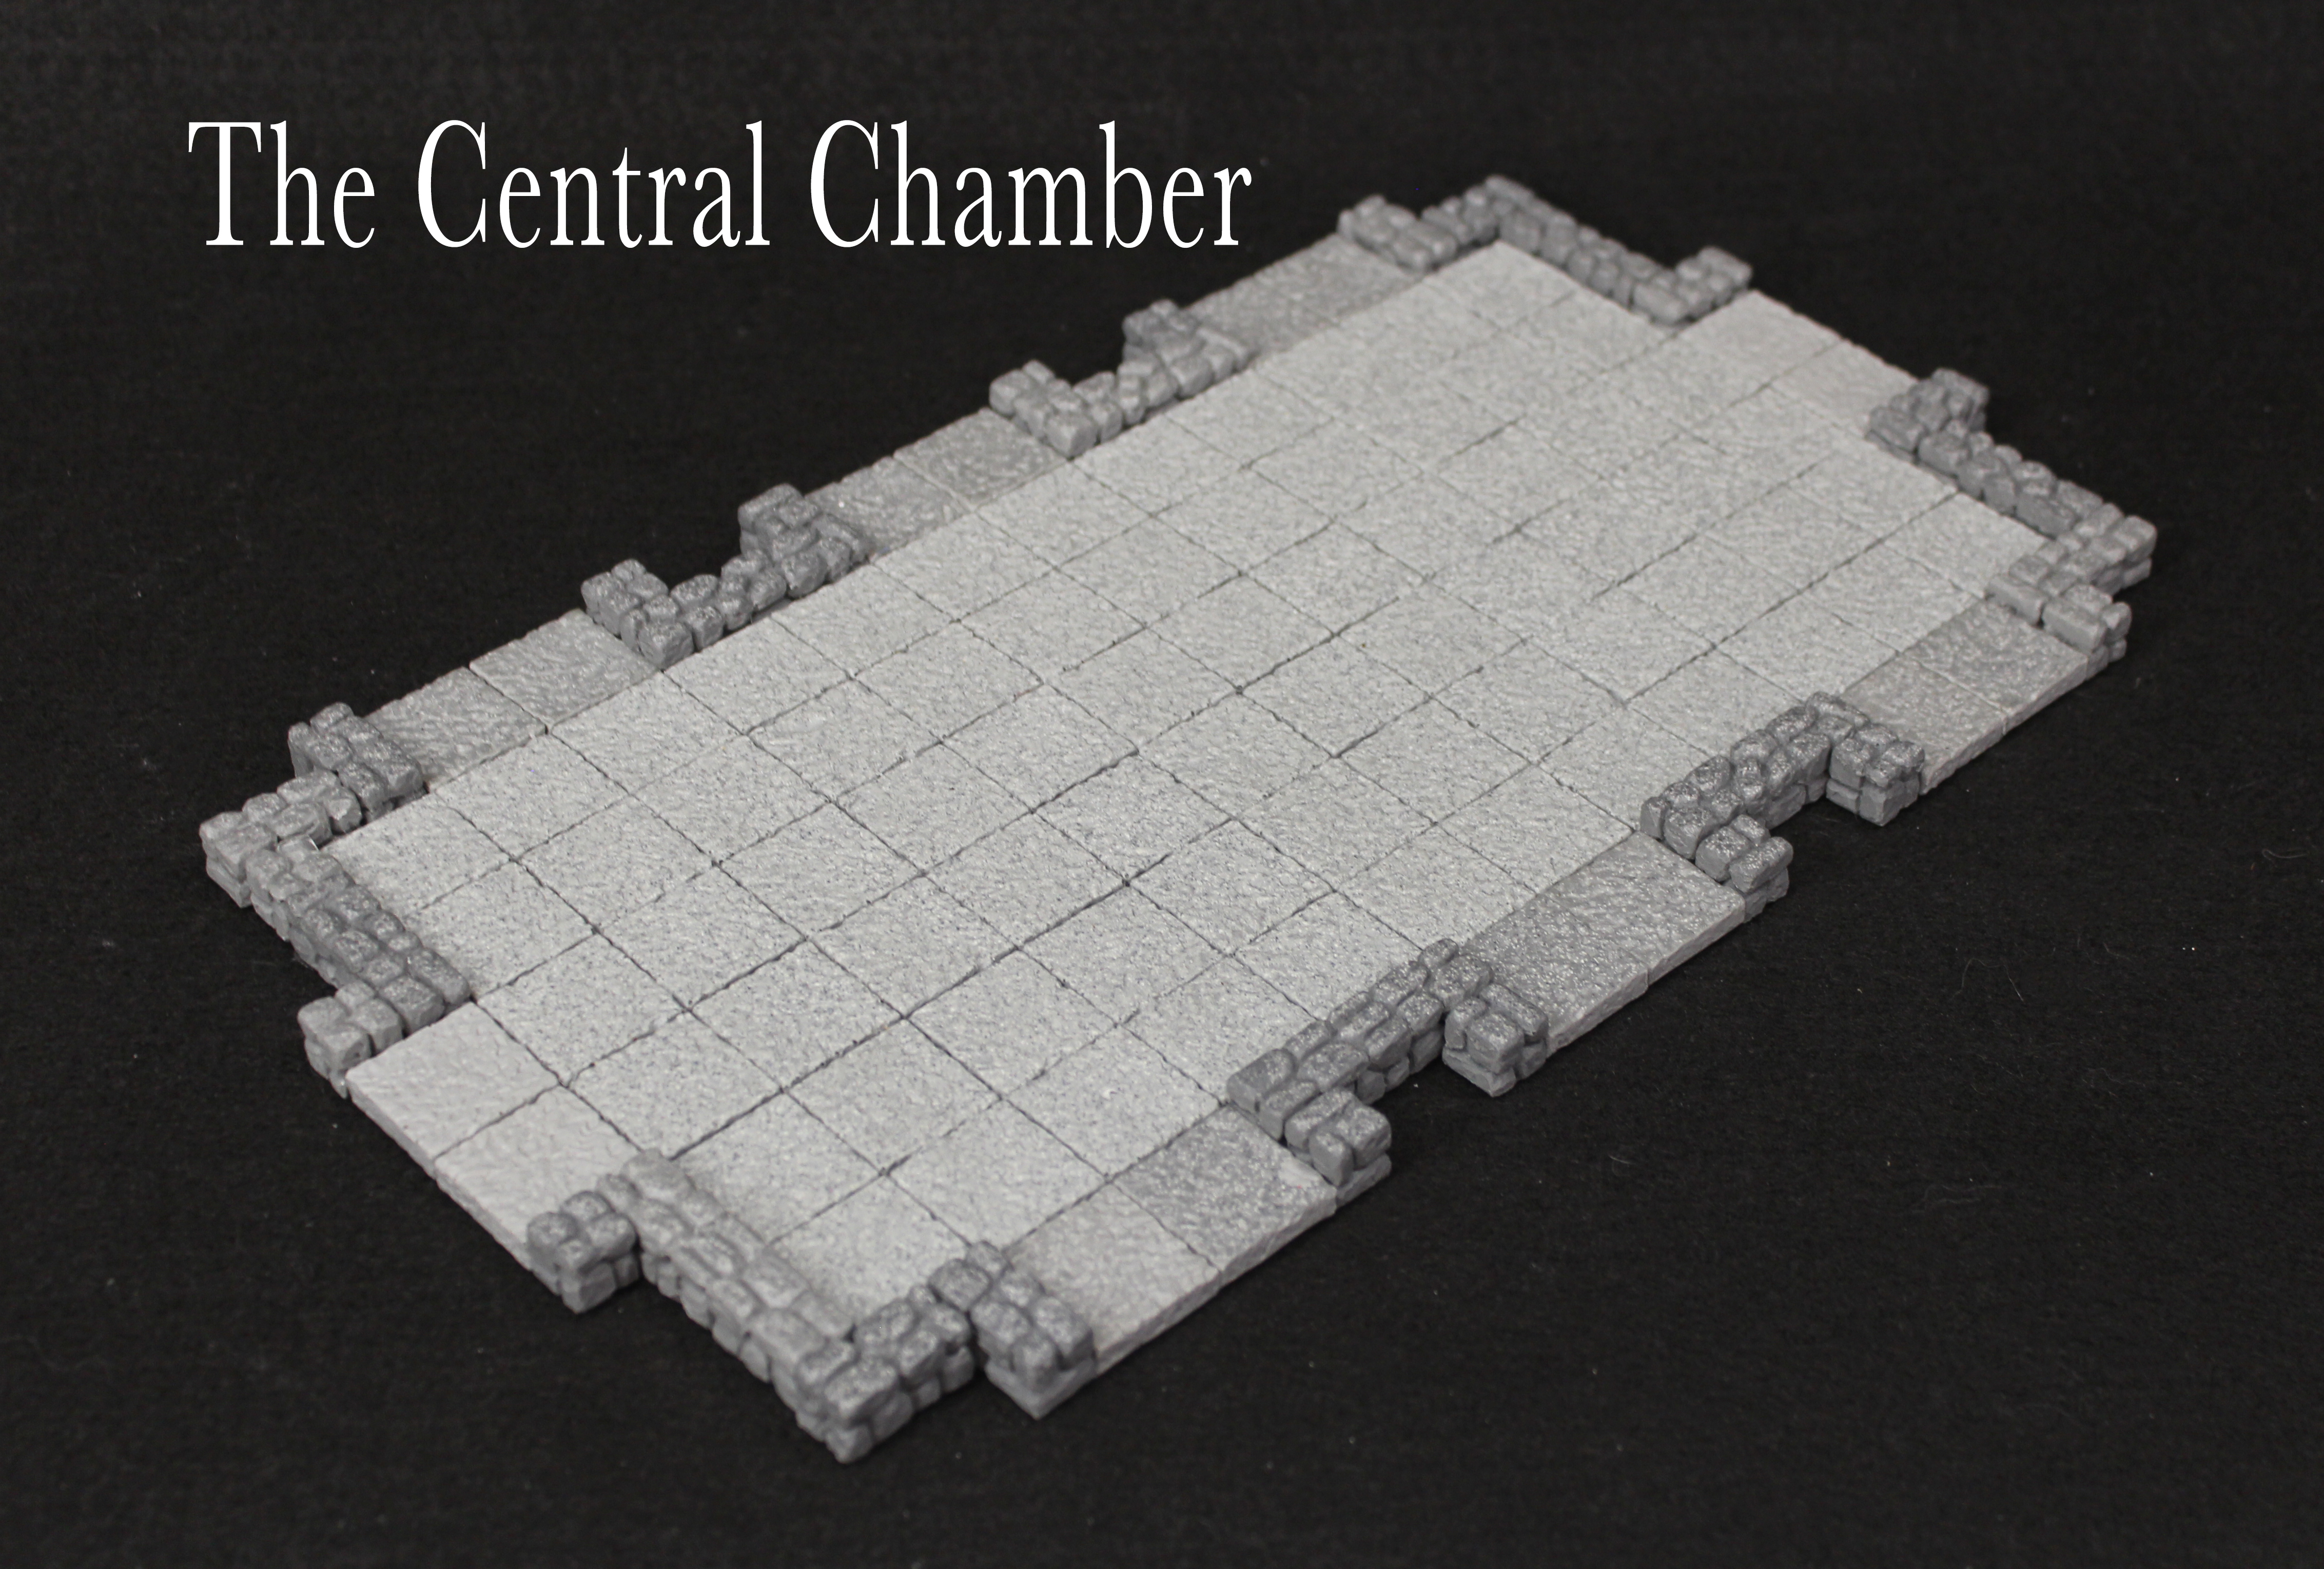 The Central Chamber